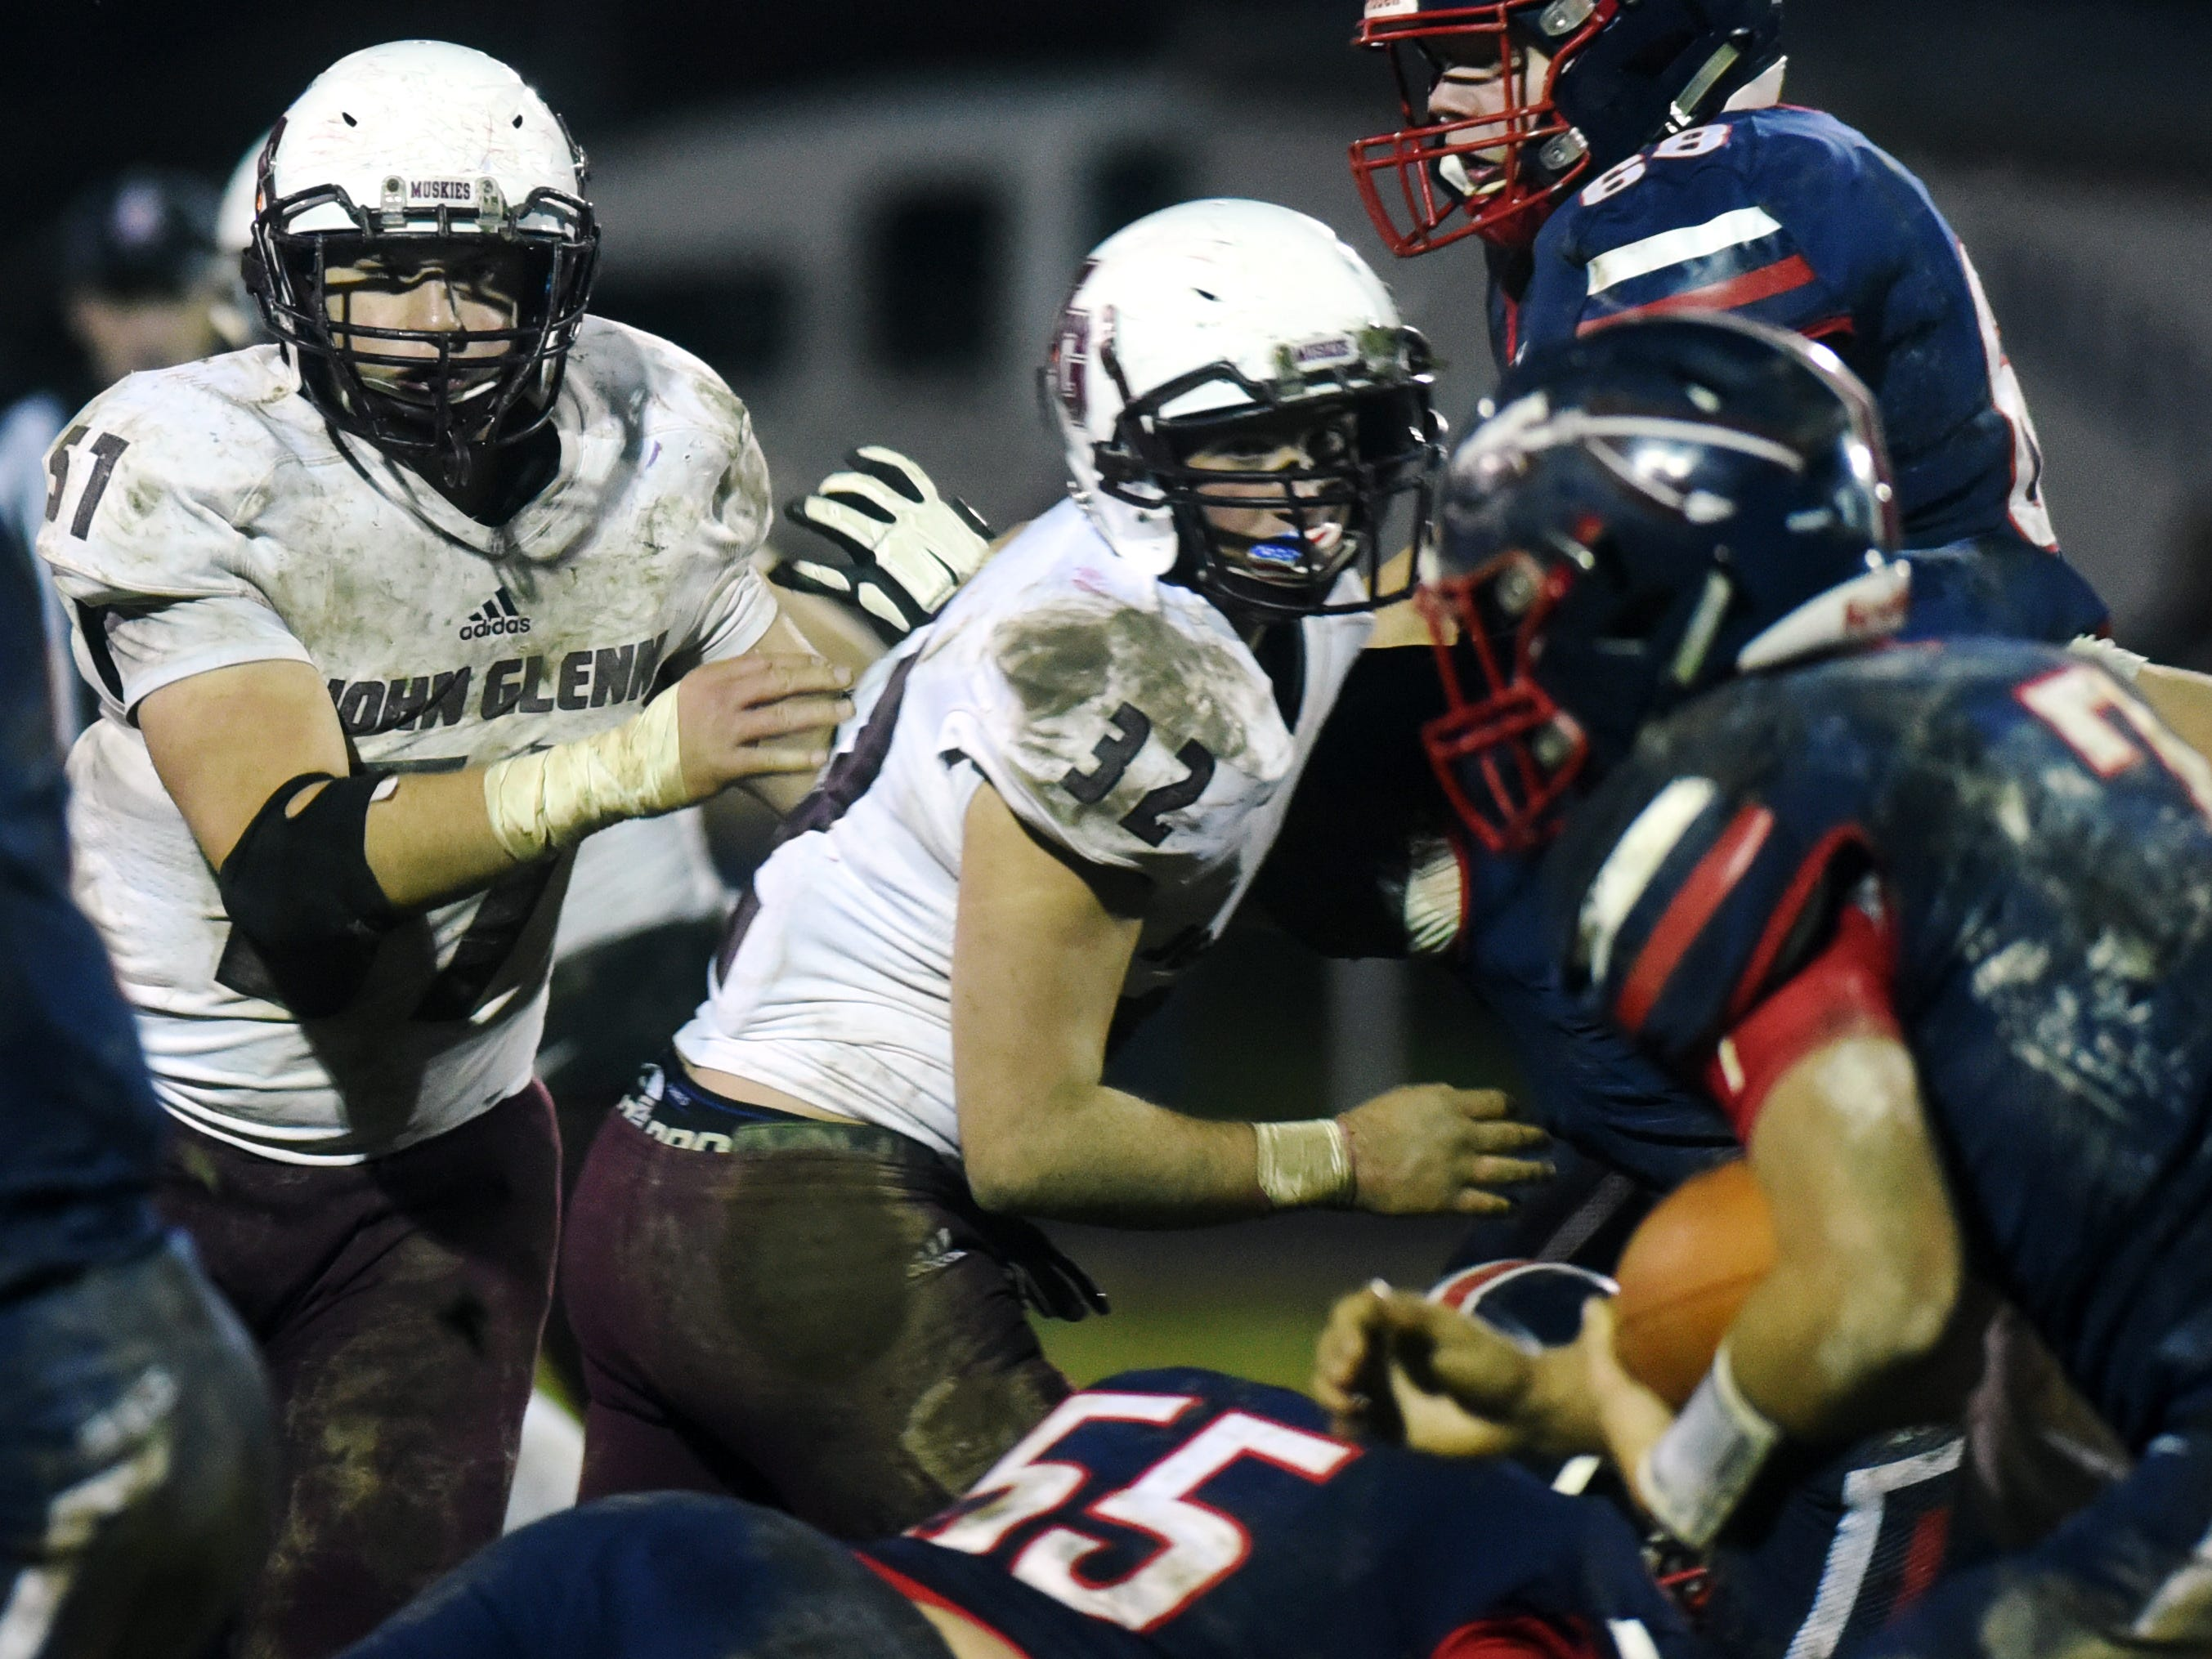 Linebackers Blaize Baker, left, and Eric Stillion size up Cade Williams during John Glenn's 16-14 playoff loss to host Gnadenhutten Indian Valley on Saturday night.